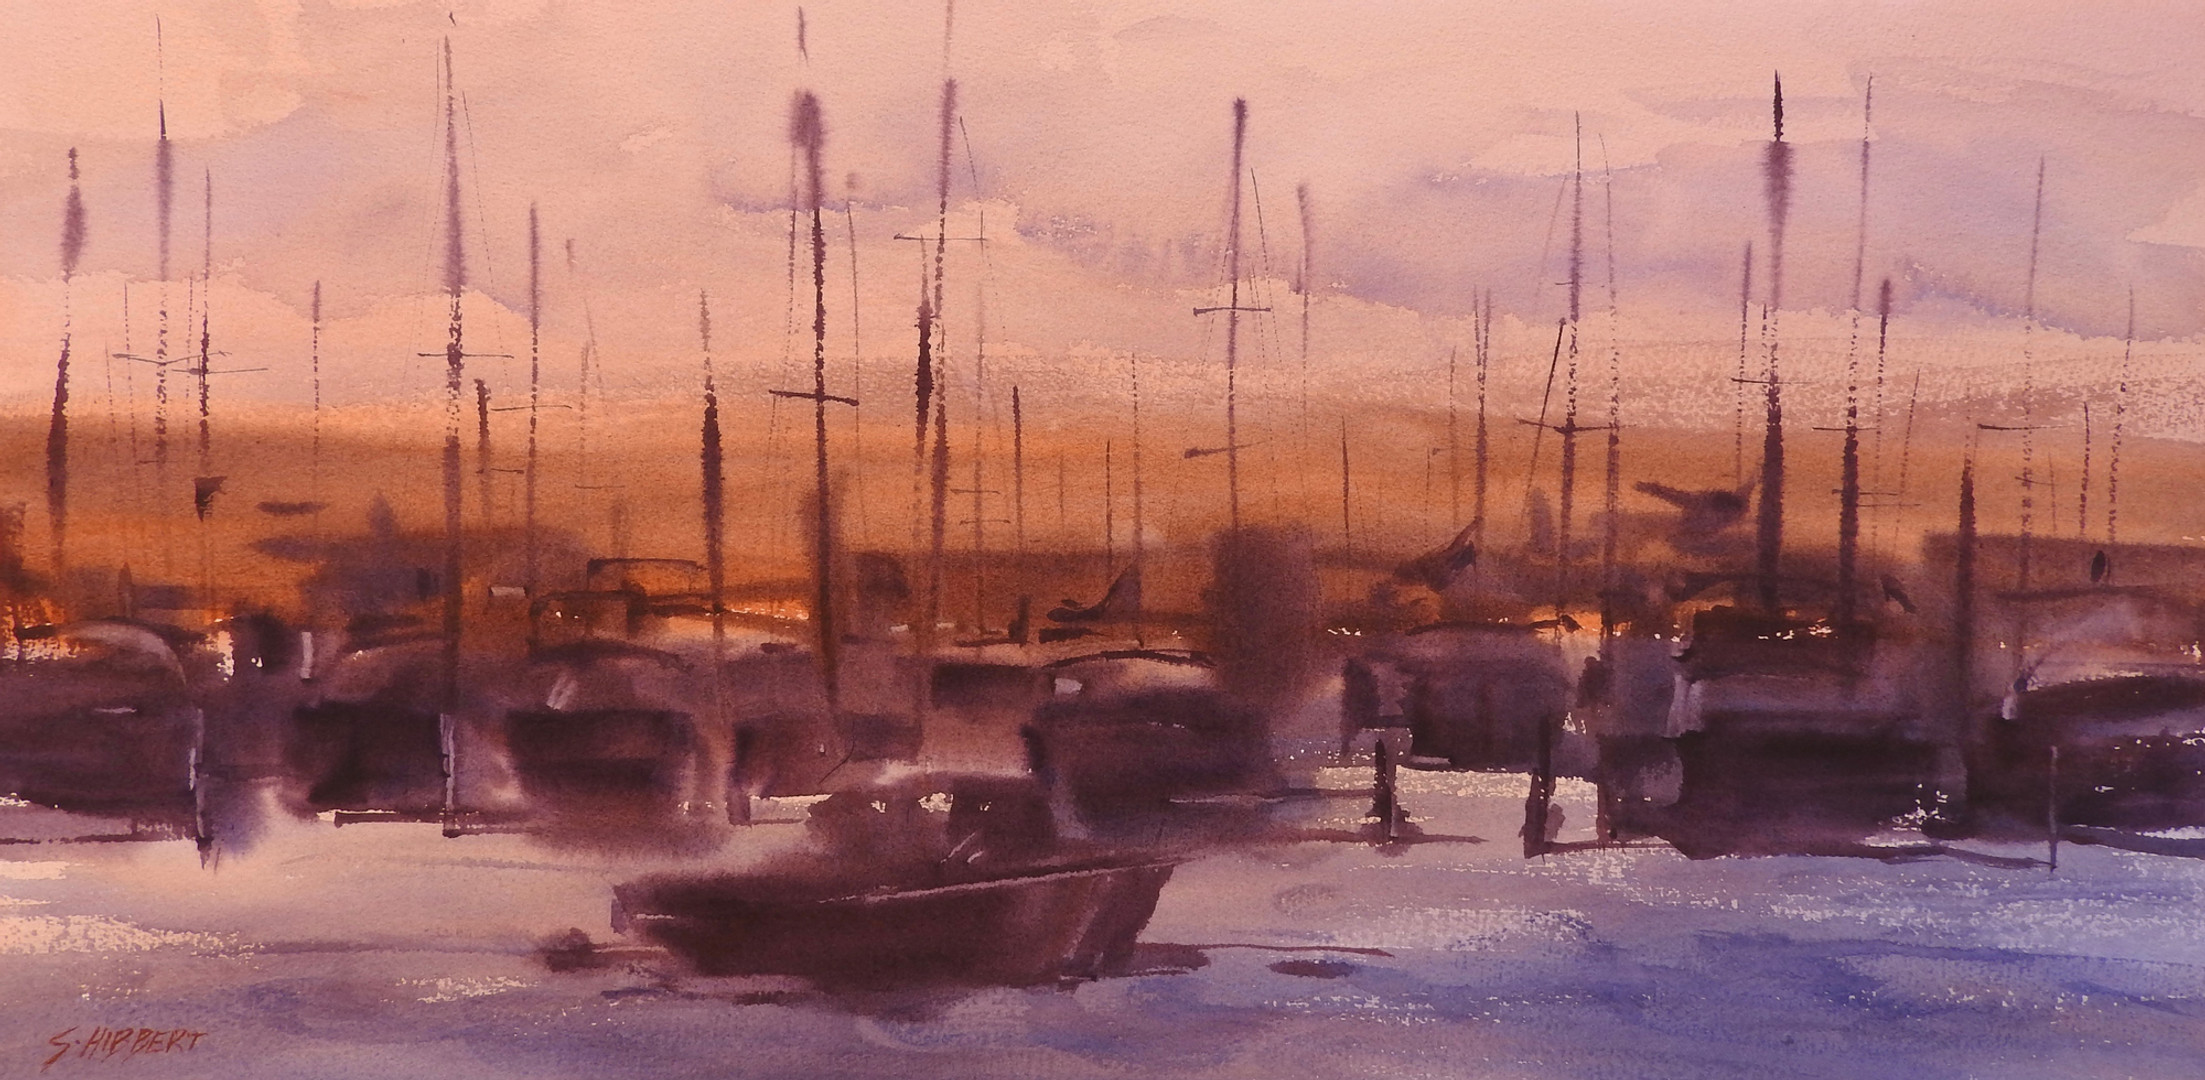 Moorings at Dawn, sold